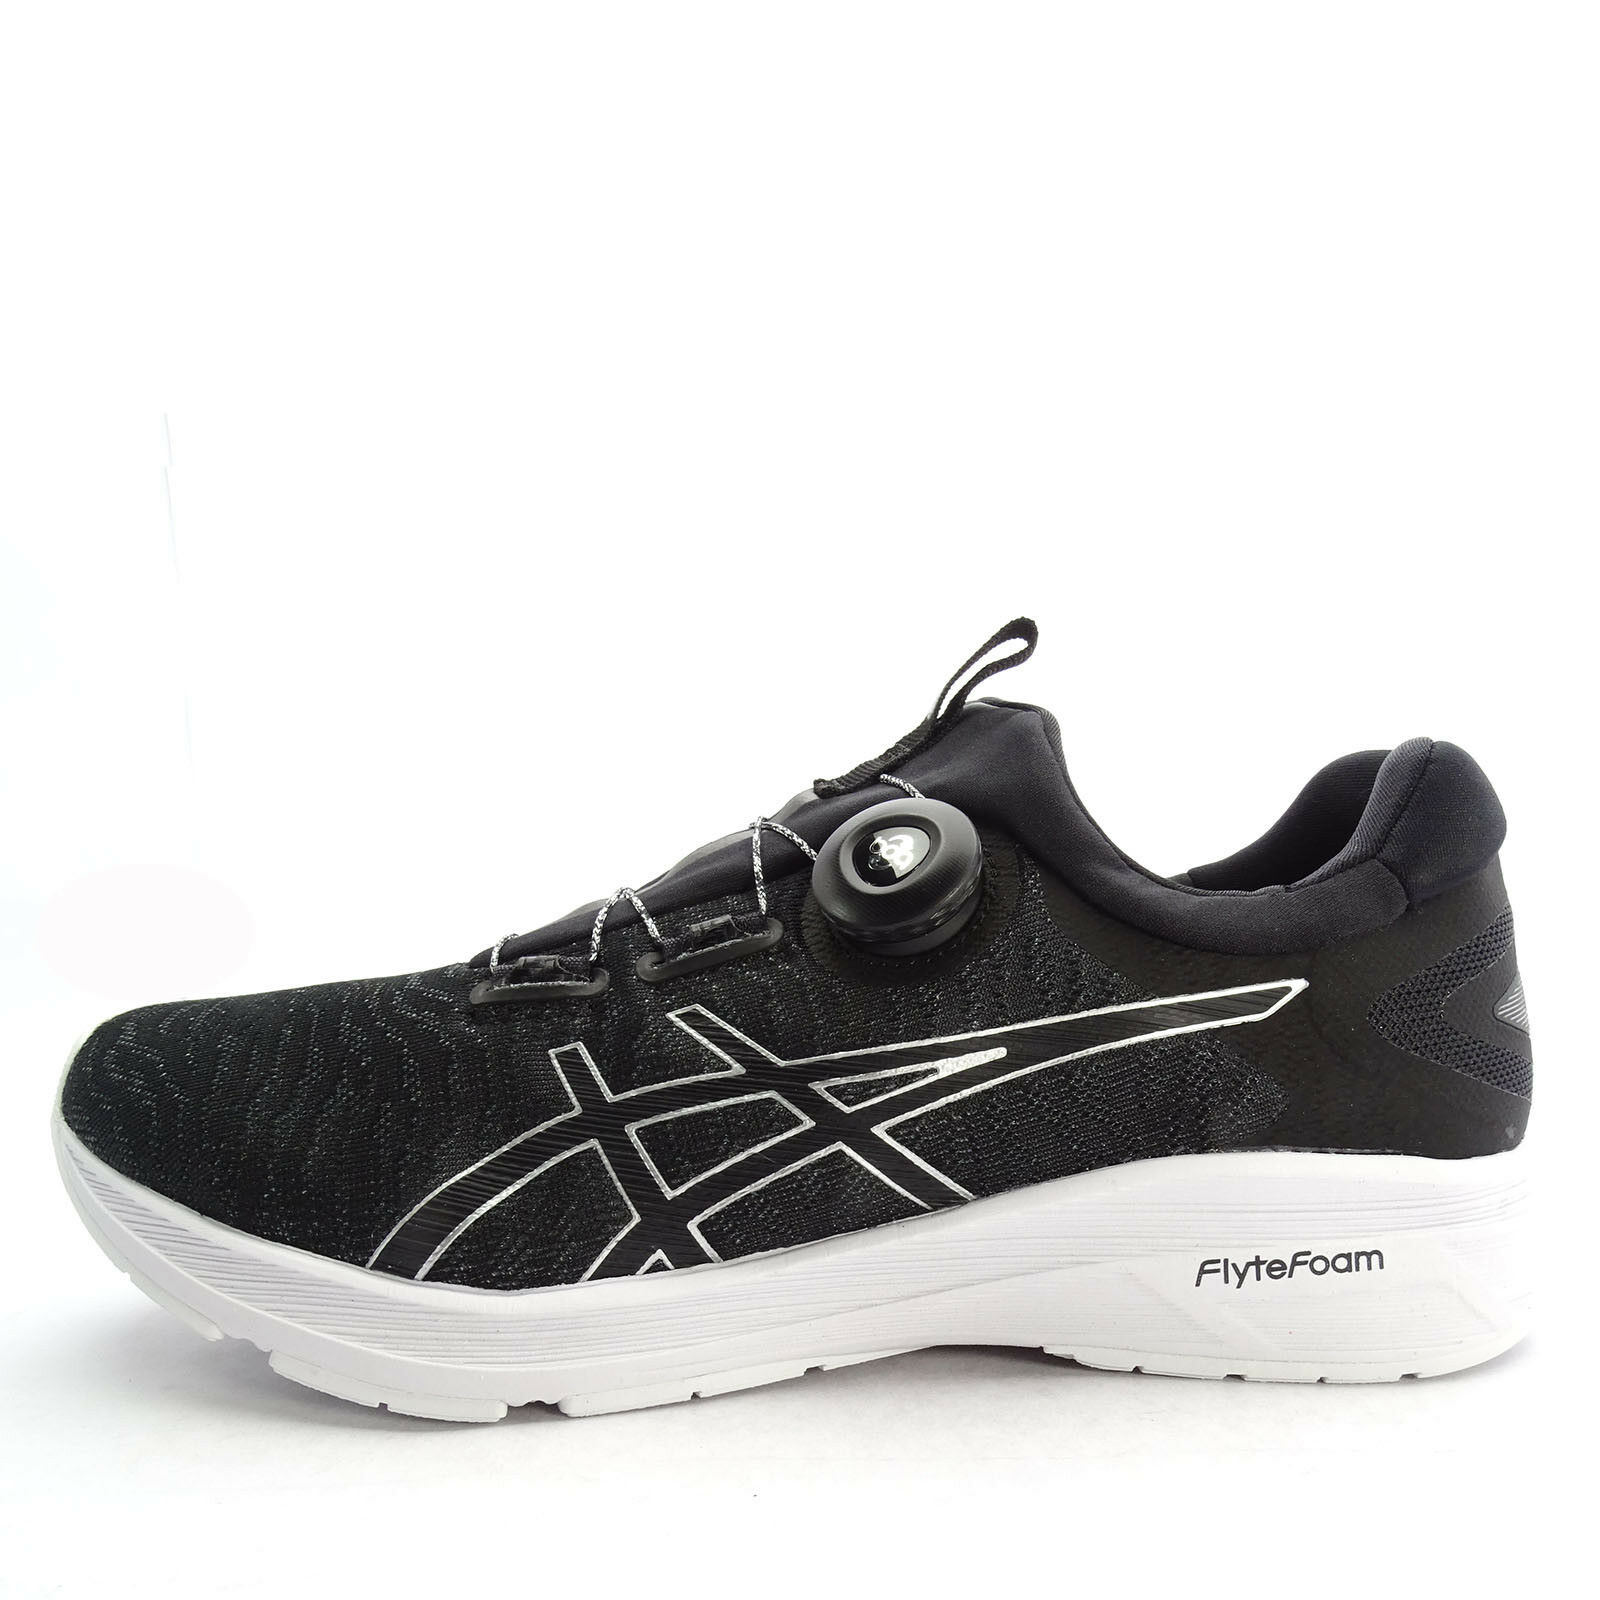 Asics Dynamis Price reduction Men Running Shoes Carbon/Black/White Cheap and beautiful fashion